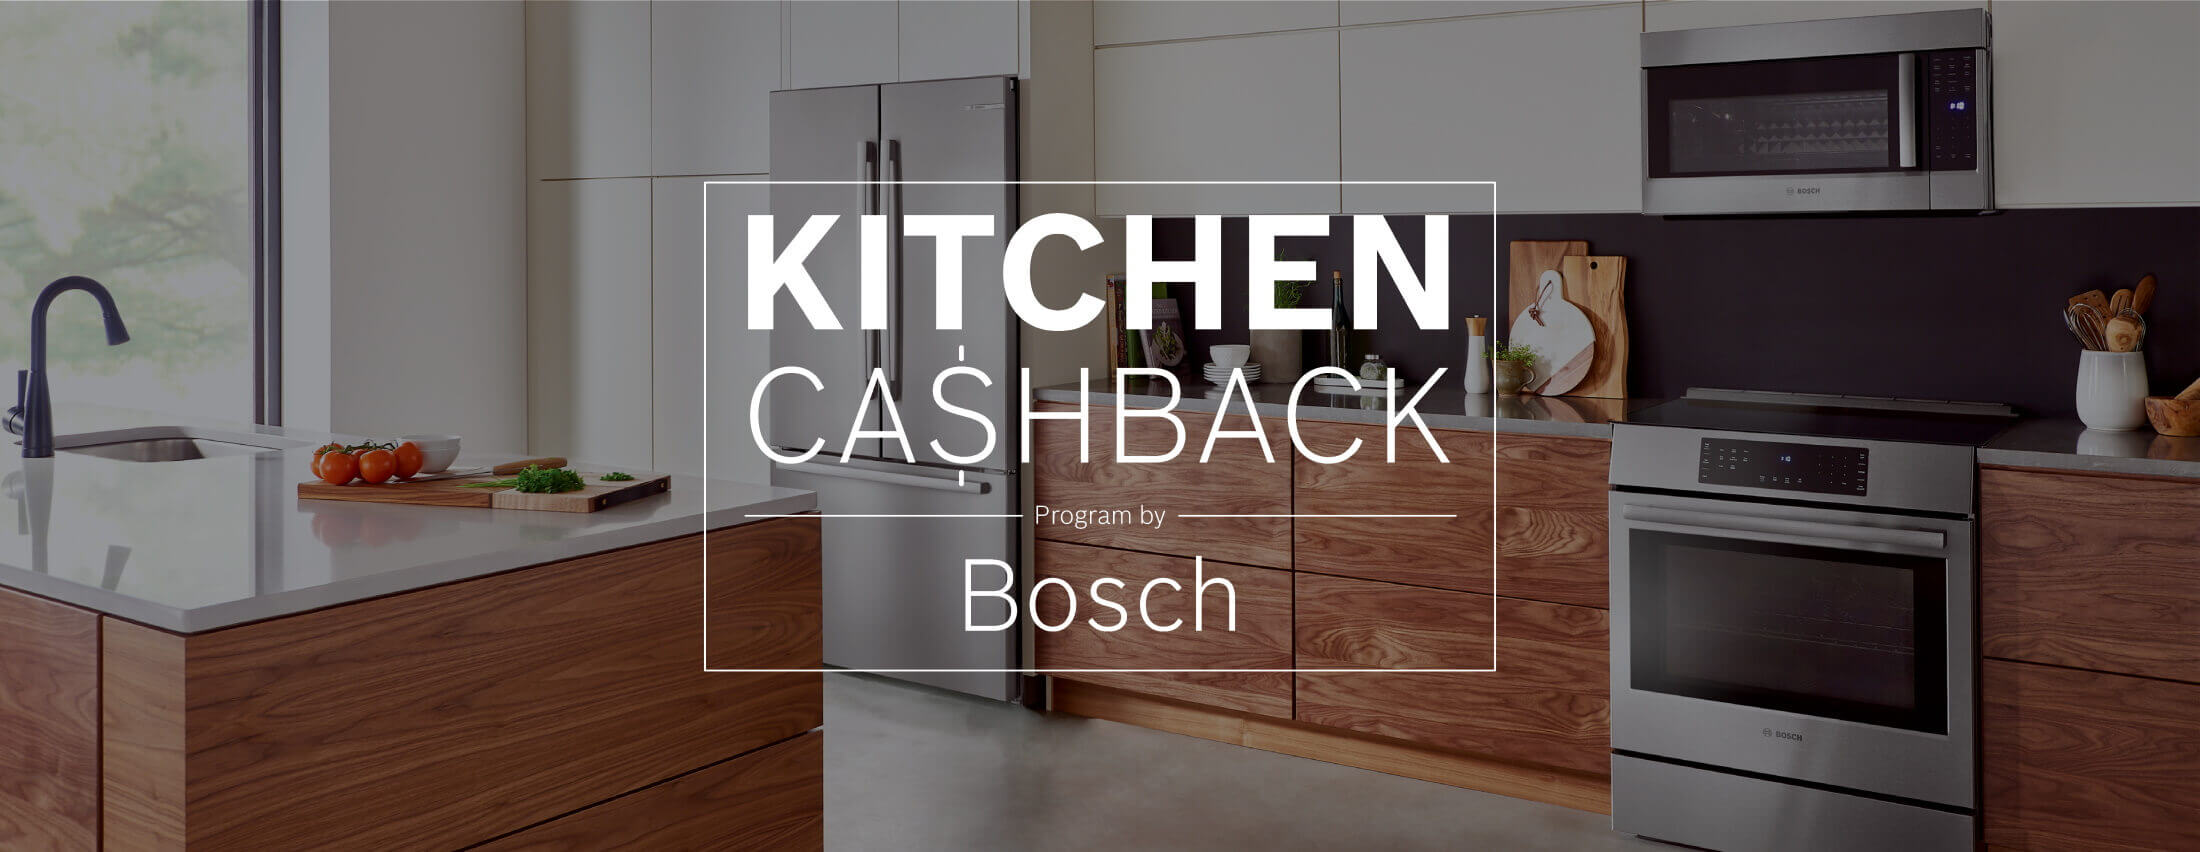 Bosch: The more you buy, the bigger the rebate!